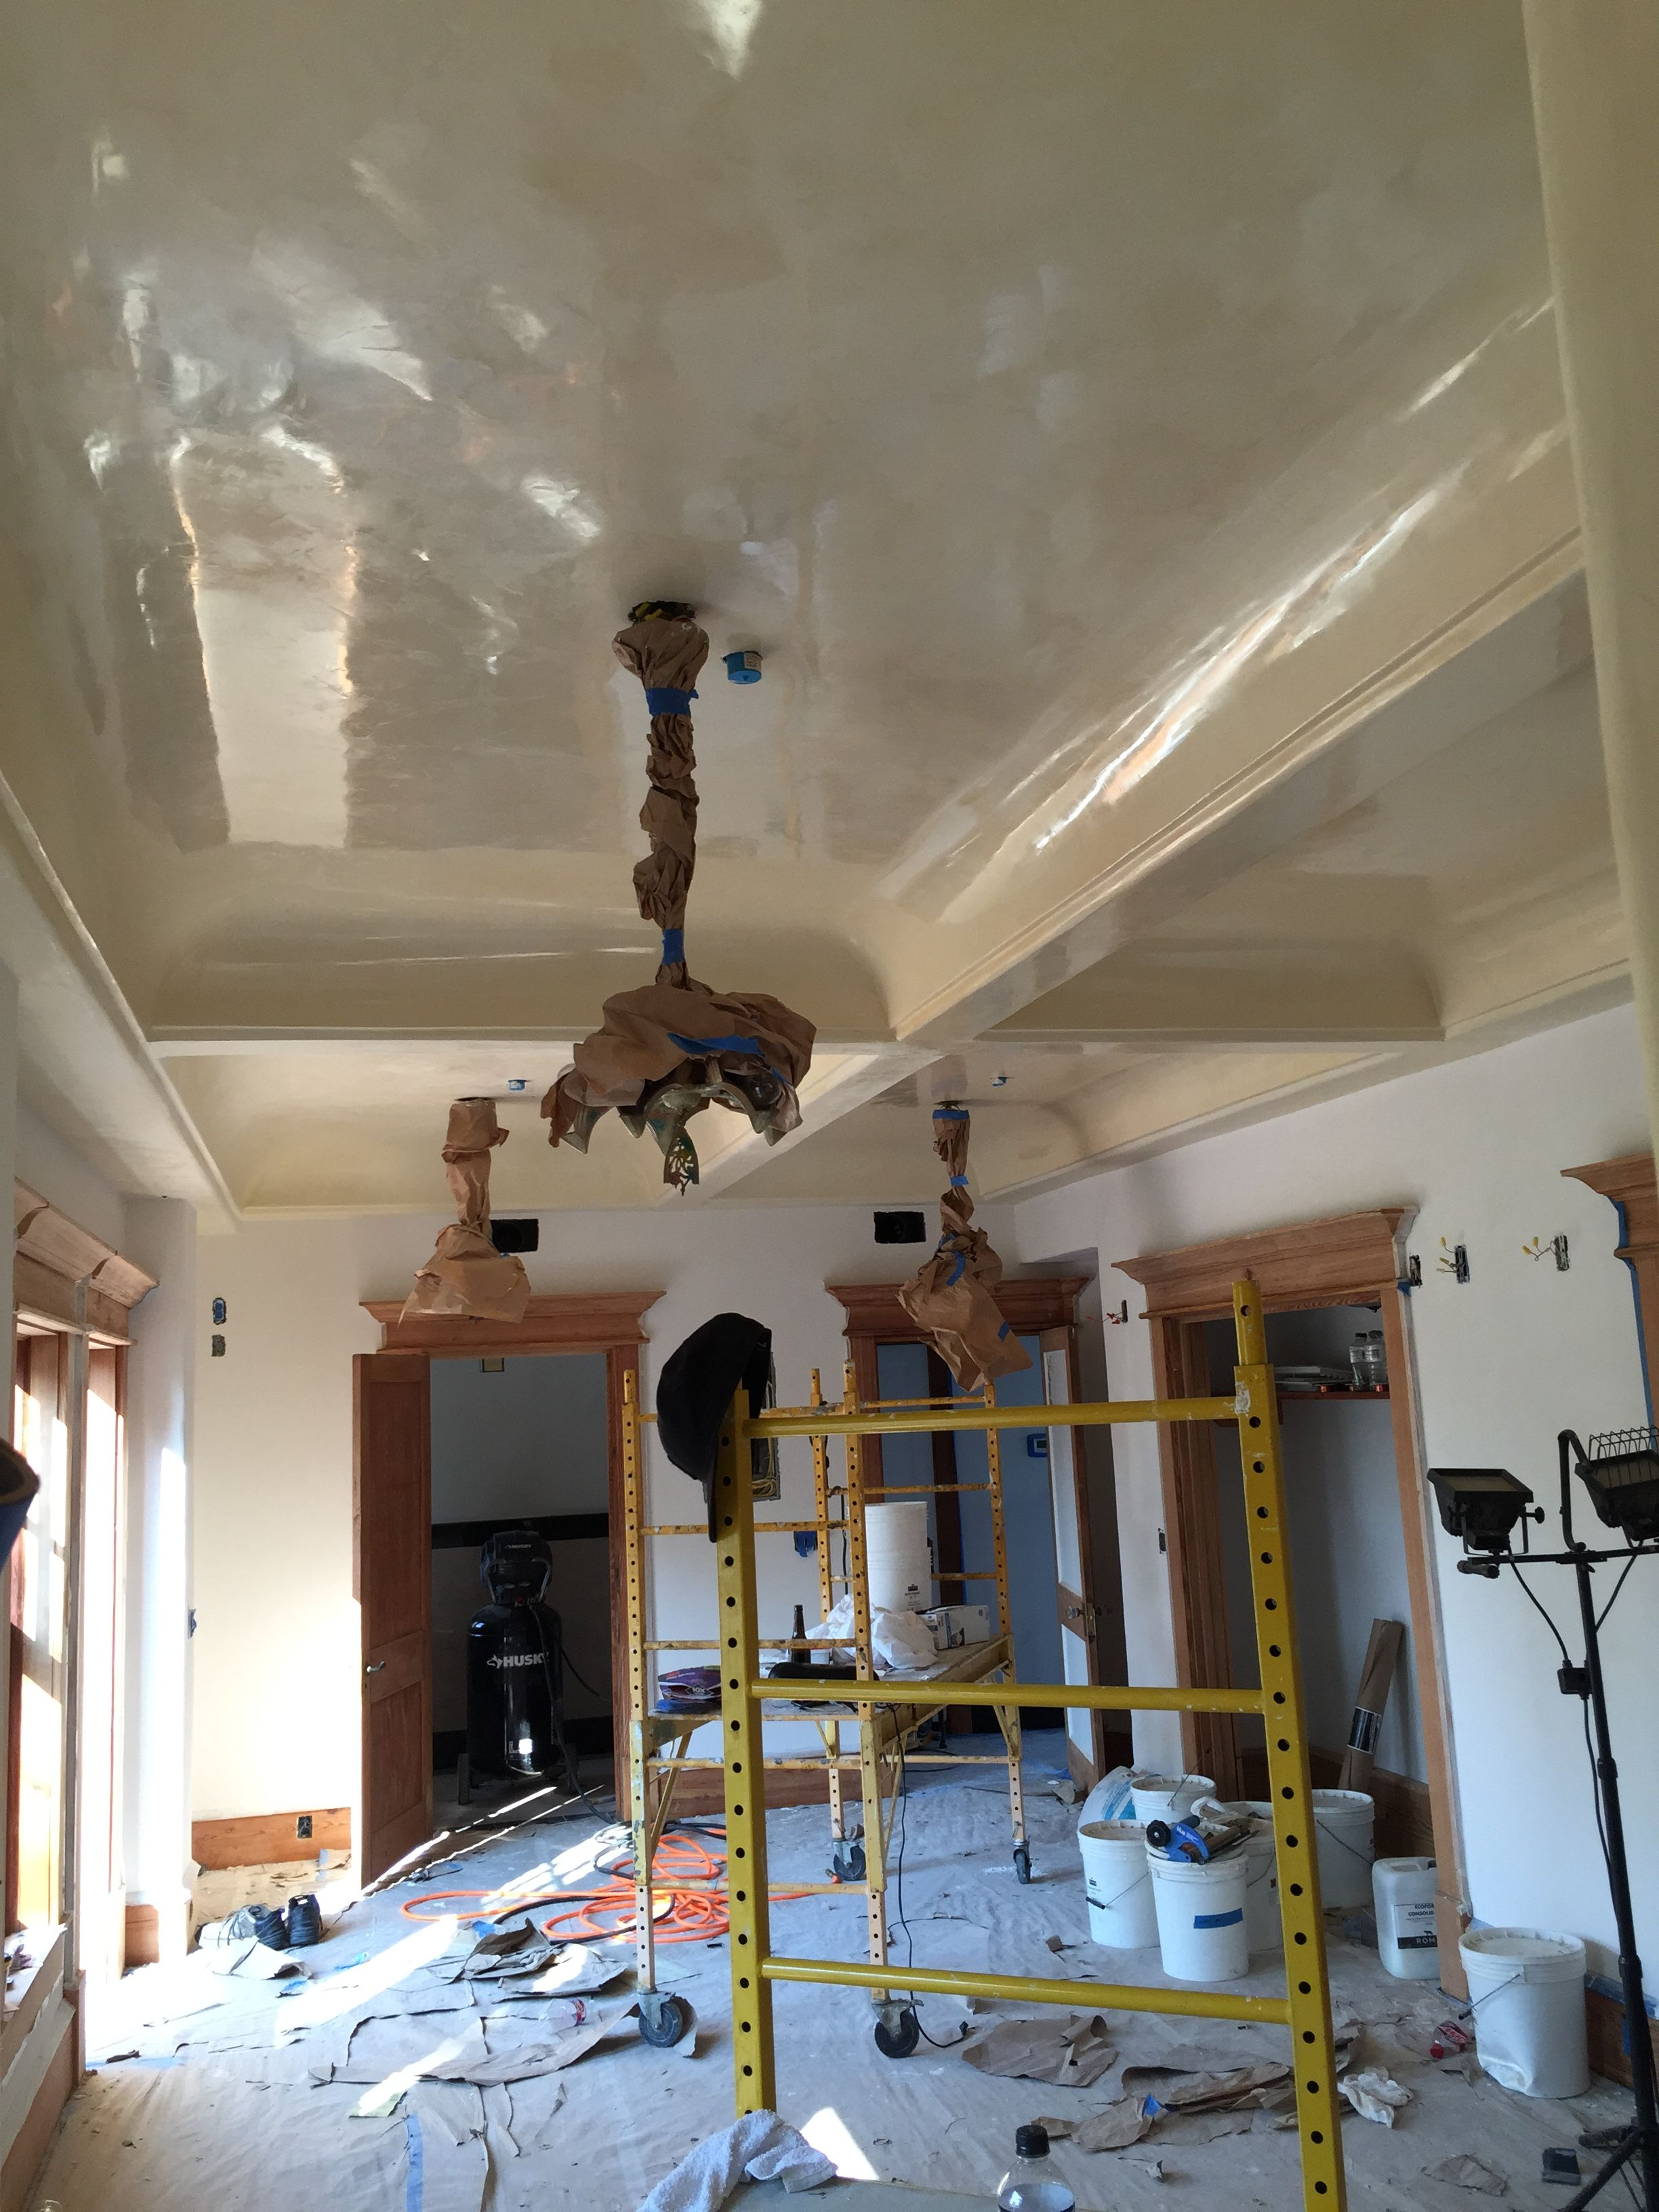 Pin By Venetian Plaster Art On Venetian Plaster On The: Pin By Reflections Of Italy On Venetian Plasters